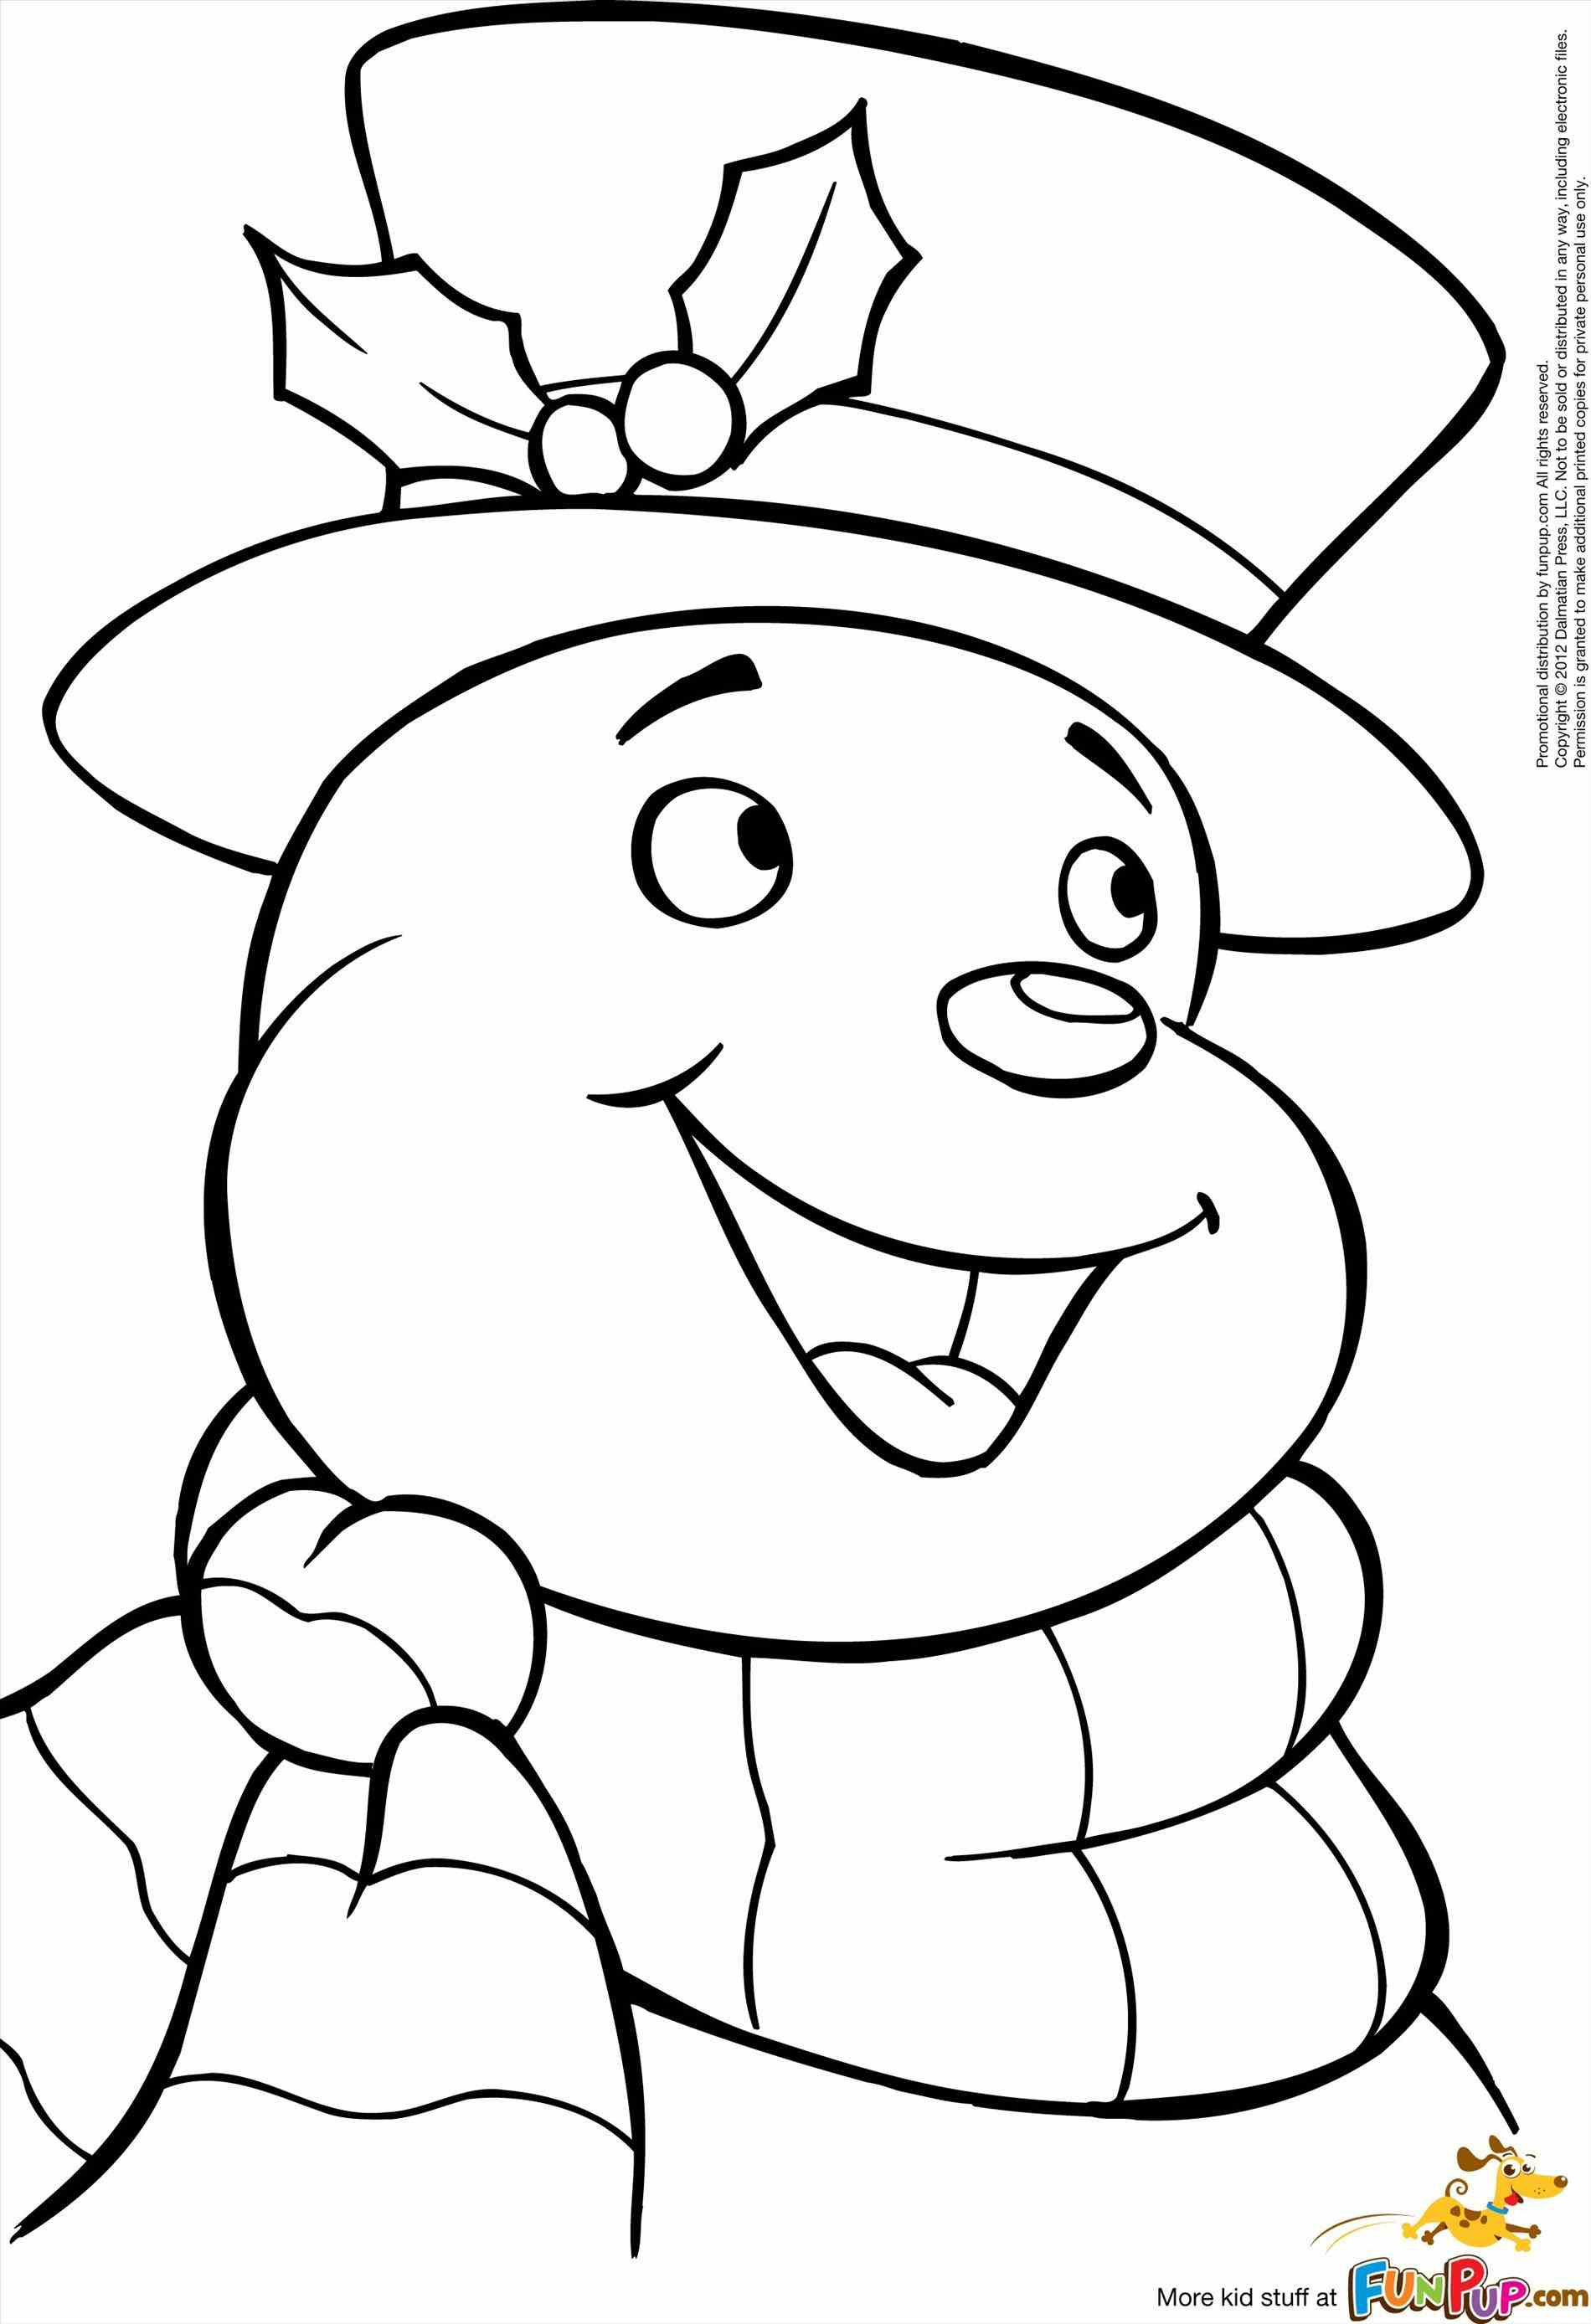 free printable snowman coloring pages coloring pages holidays free downloads snowman coloring free printable pages